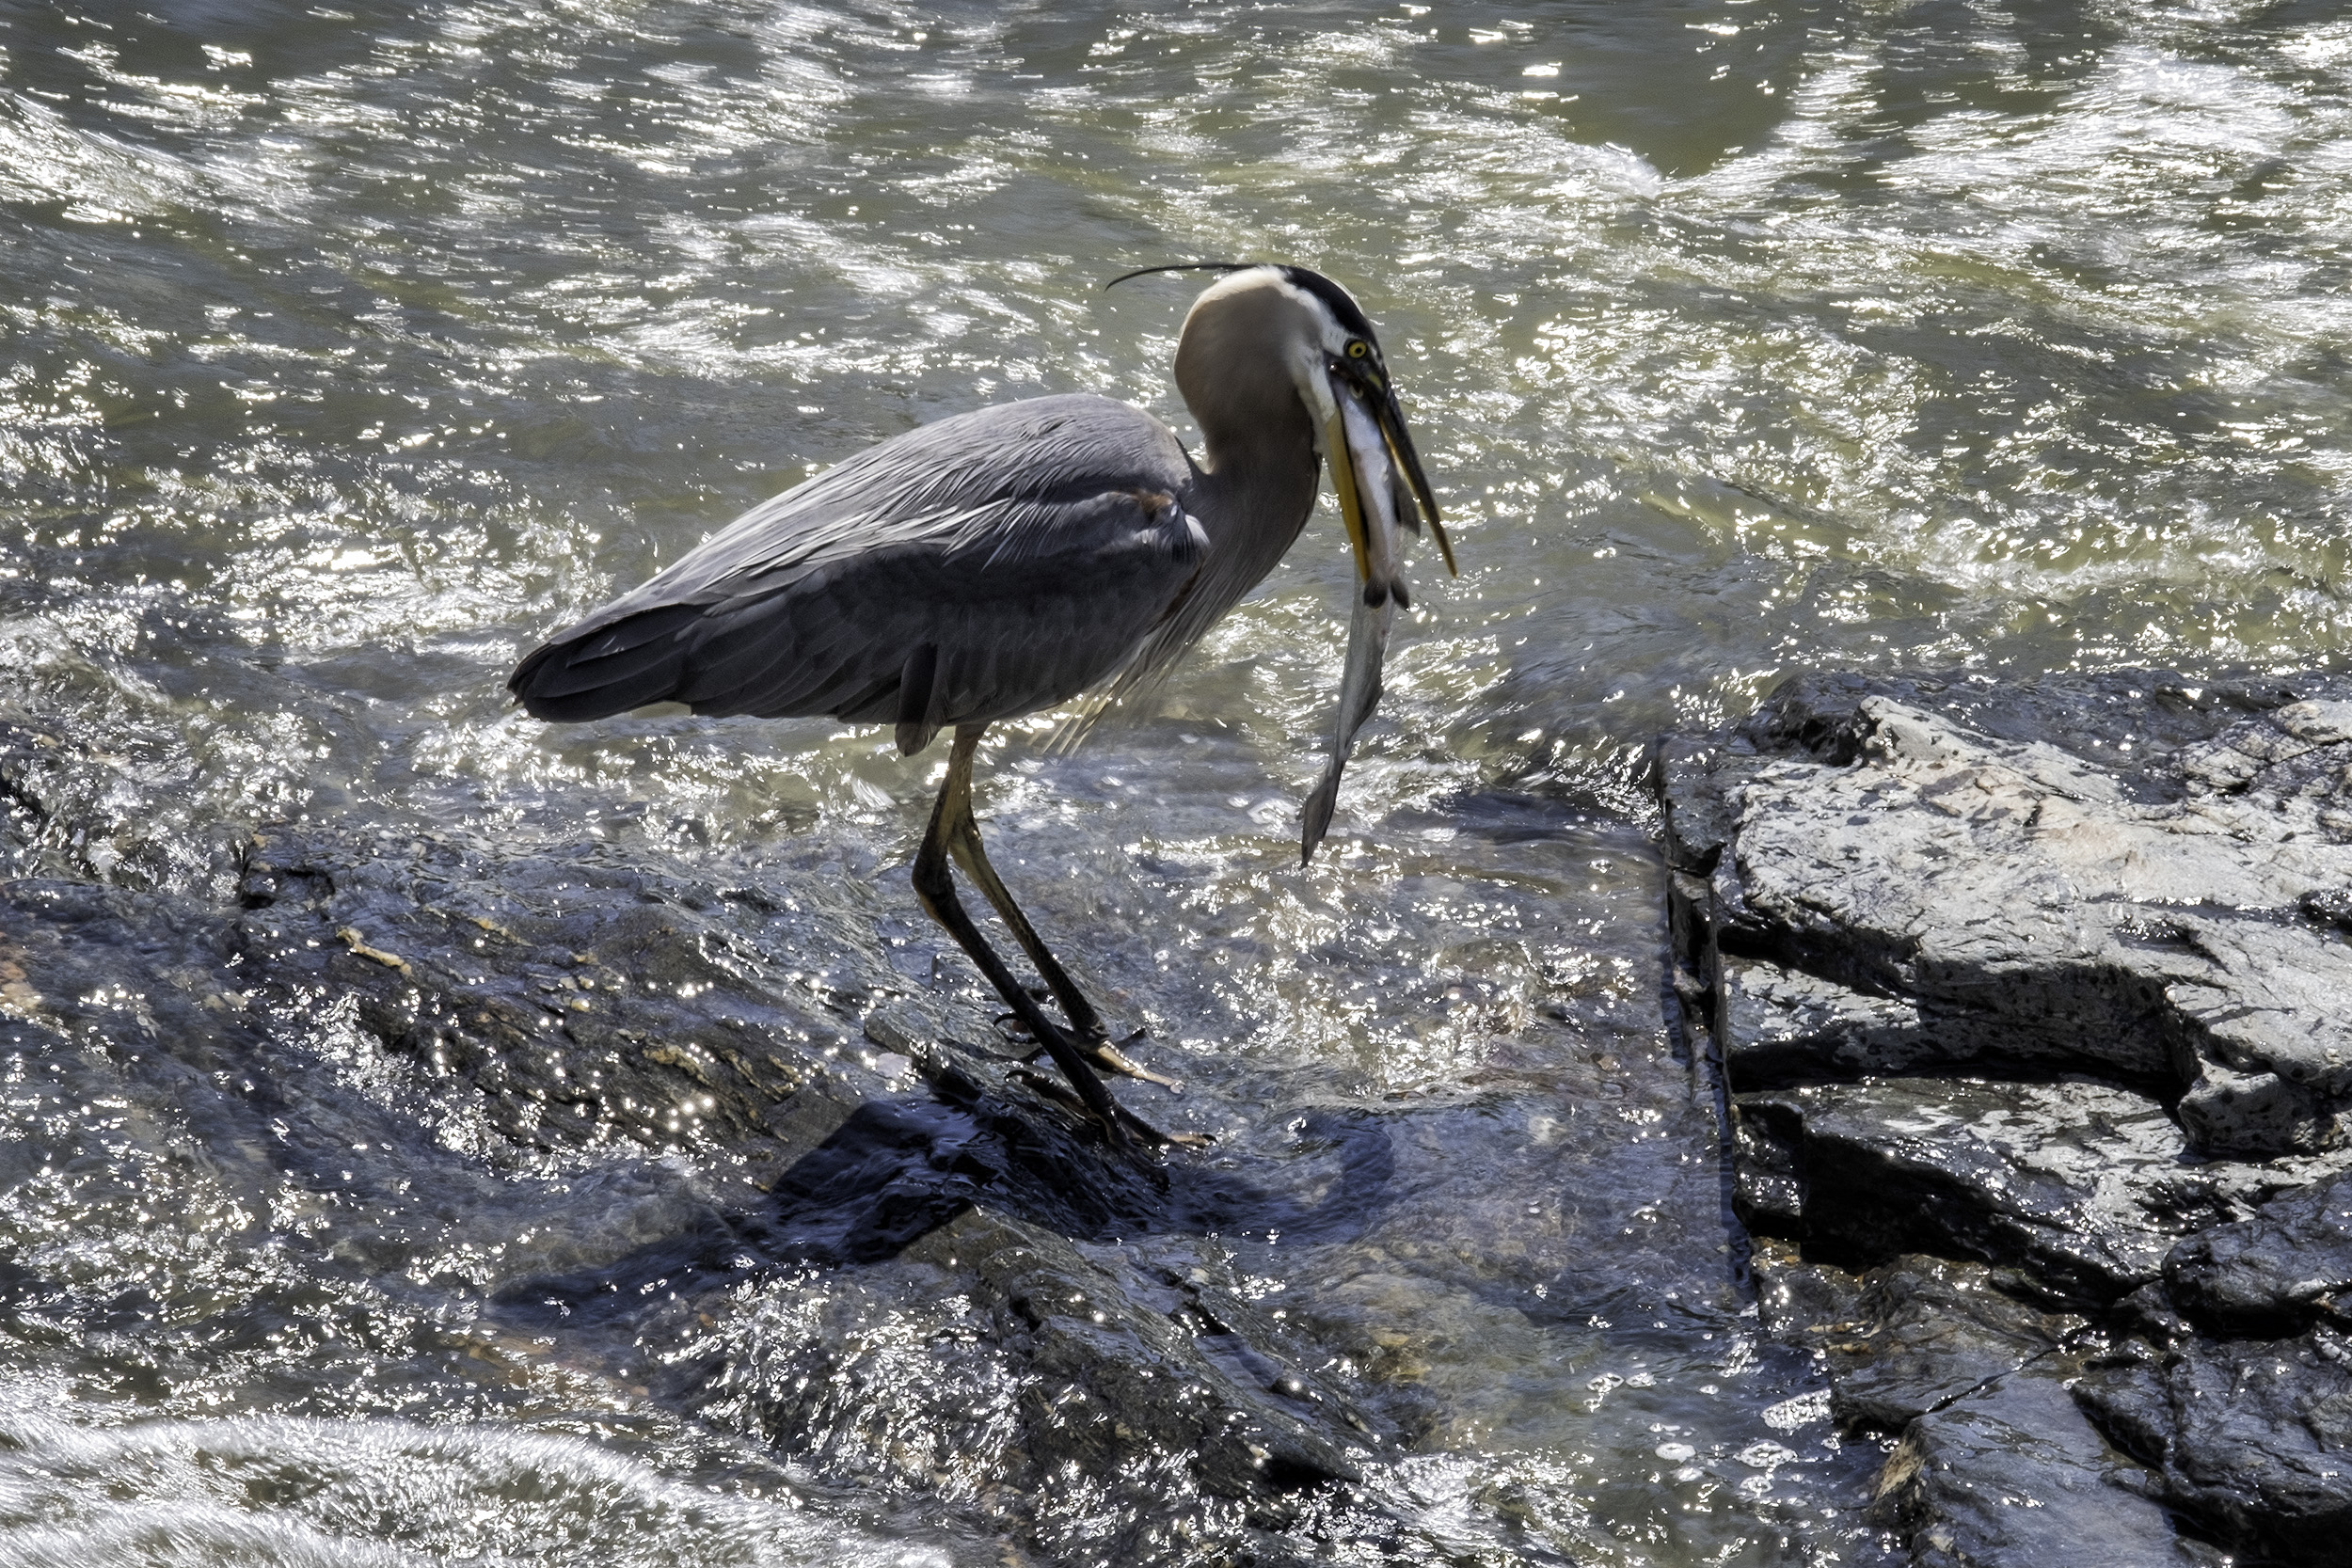 190521 Great Falls Heron 072-1.jpg